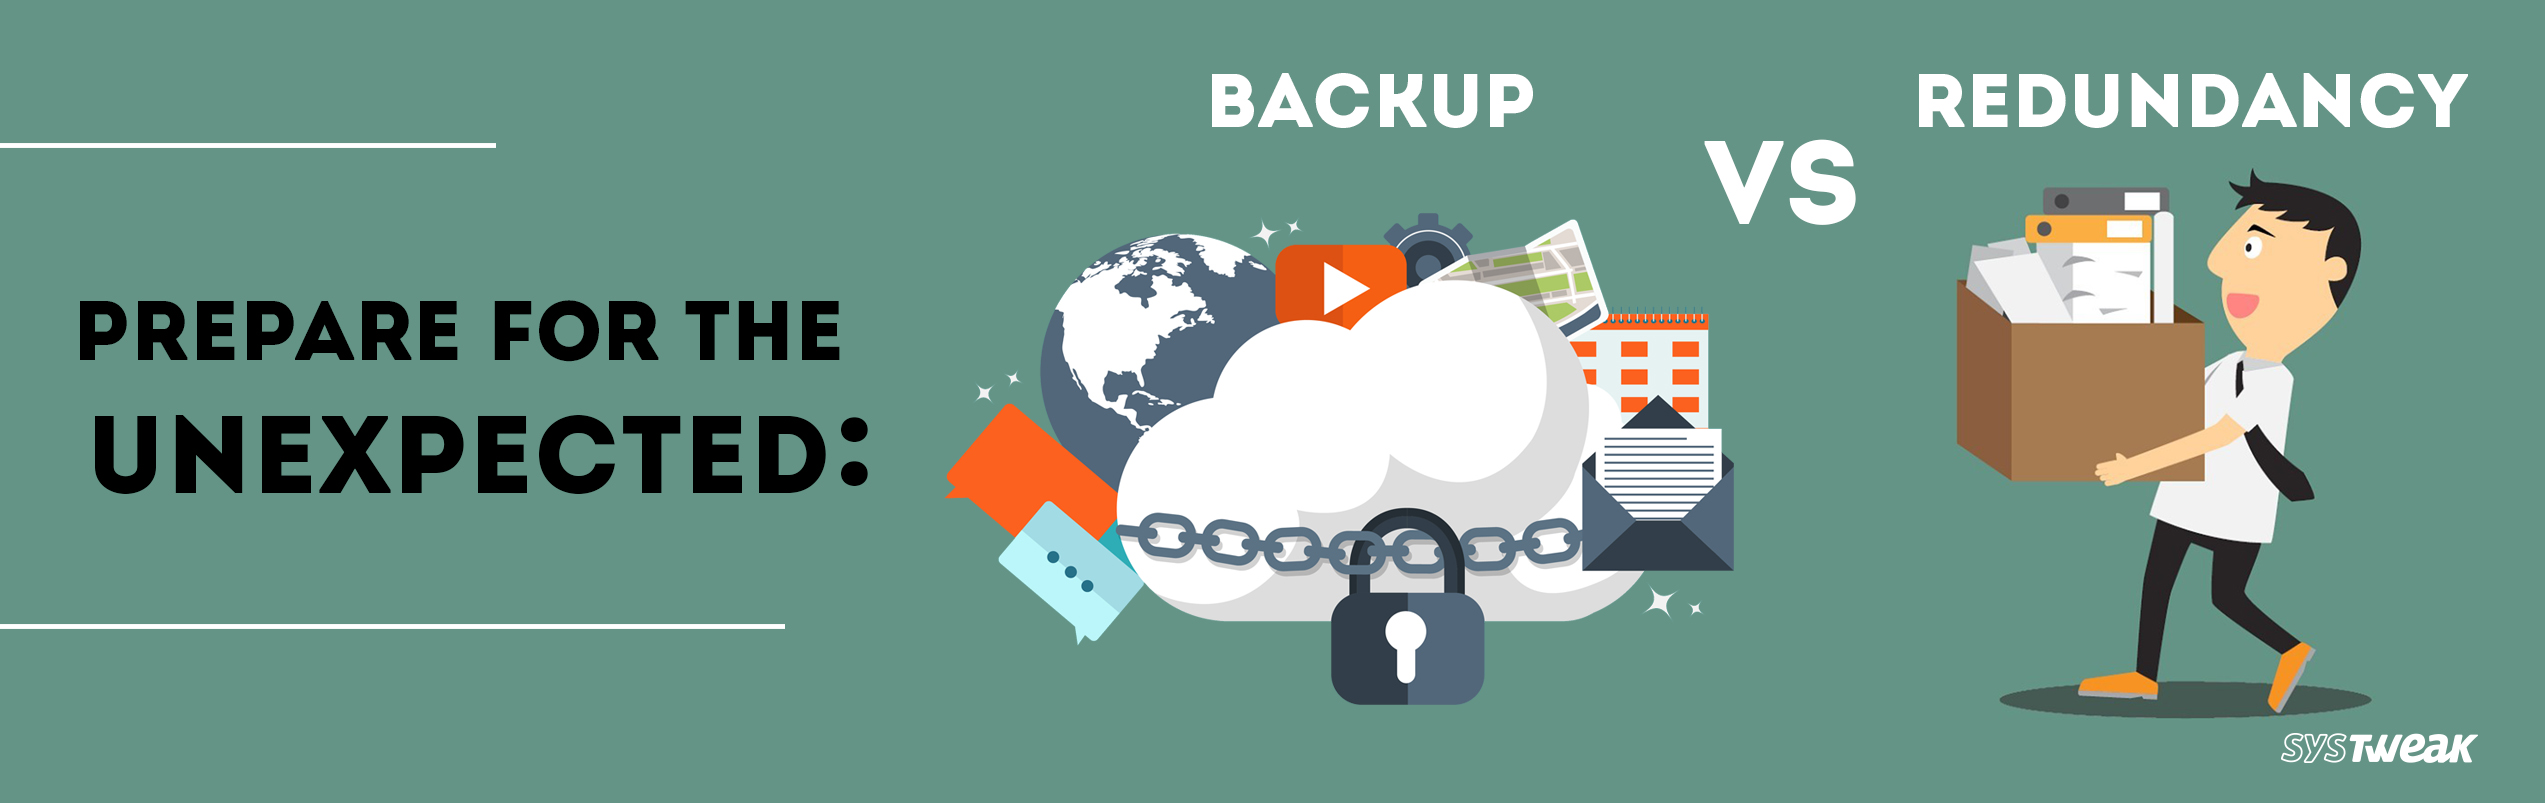 Backup Vs Redundancy: What will you choose?